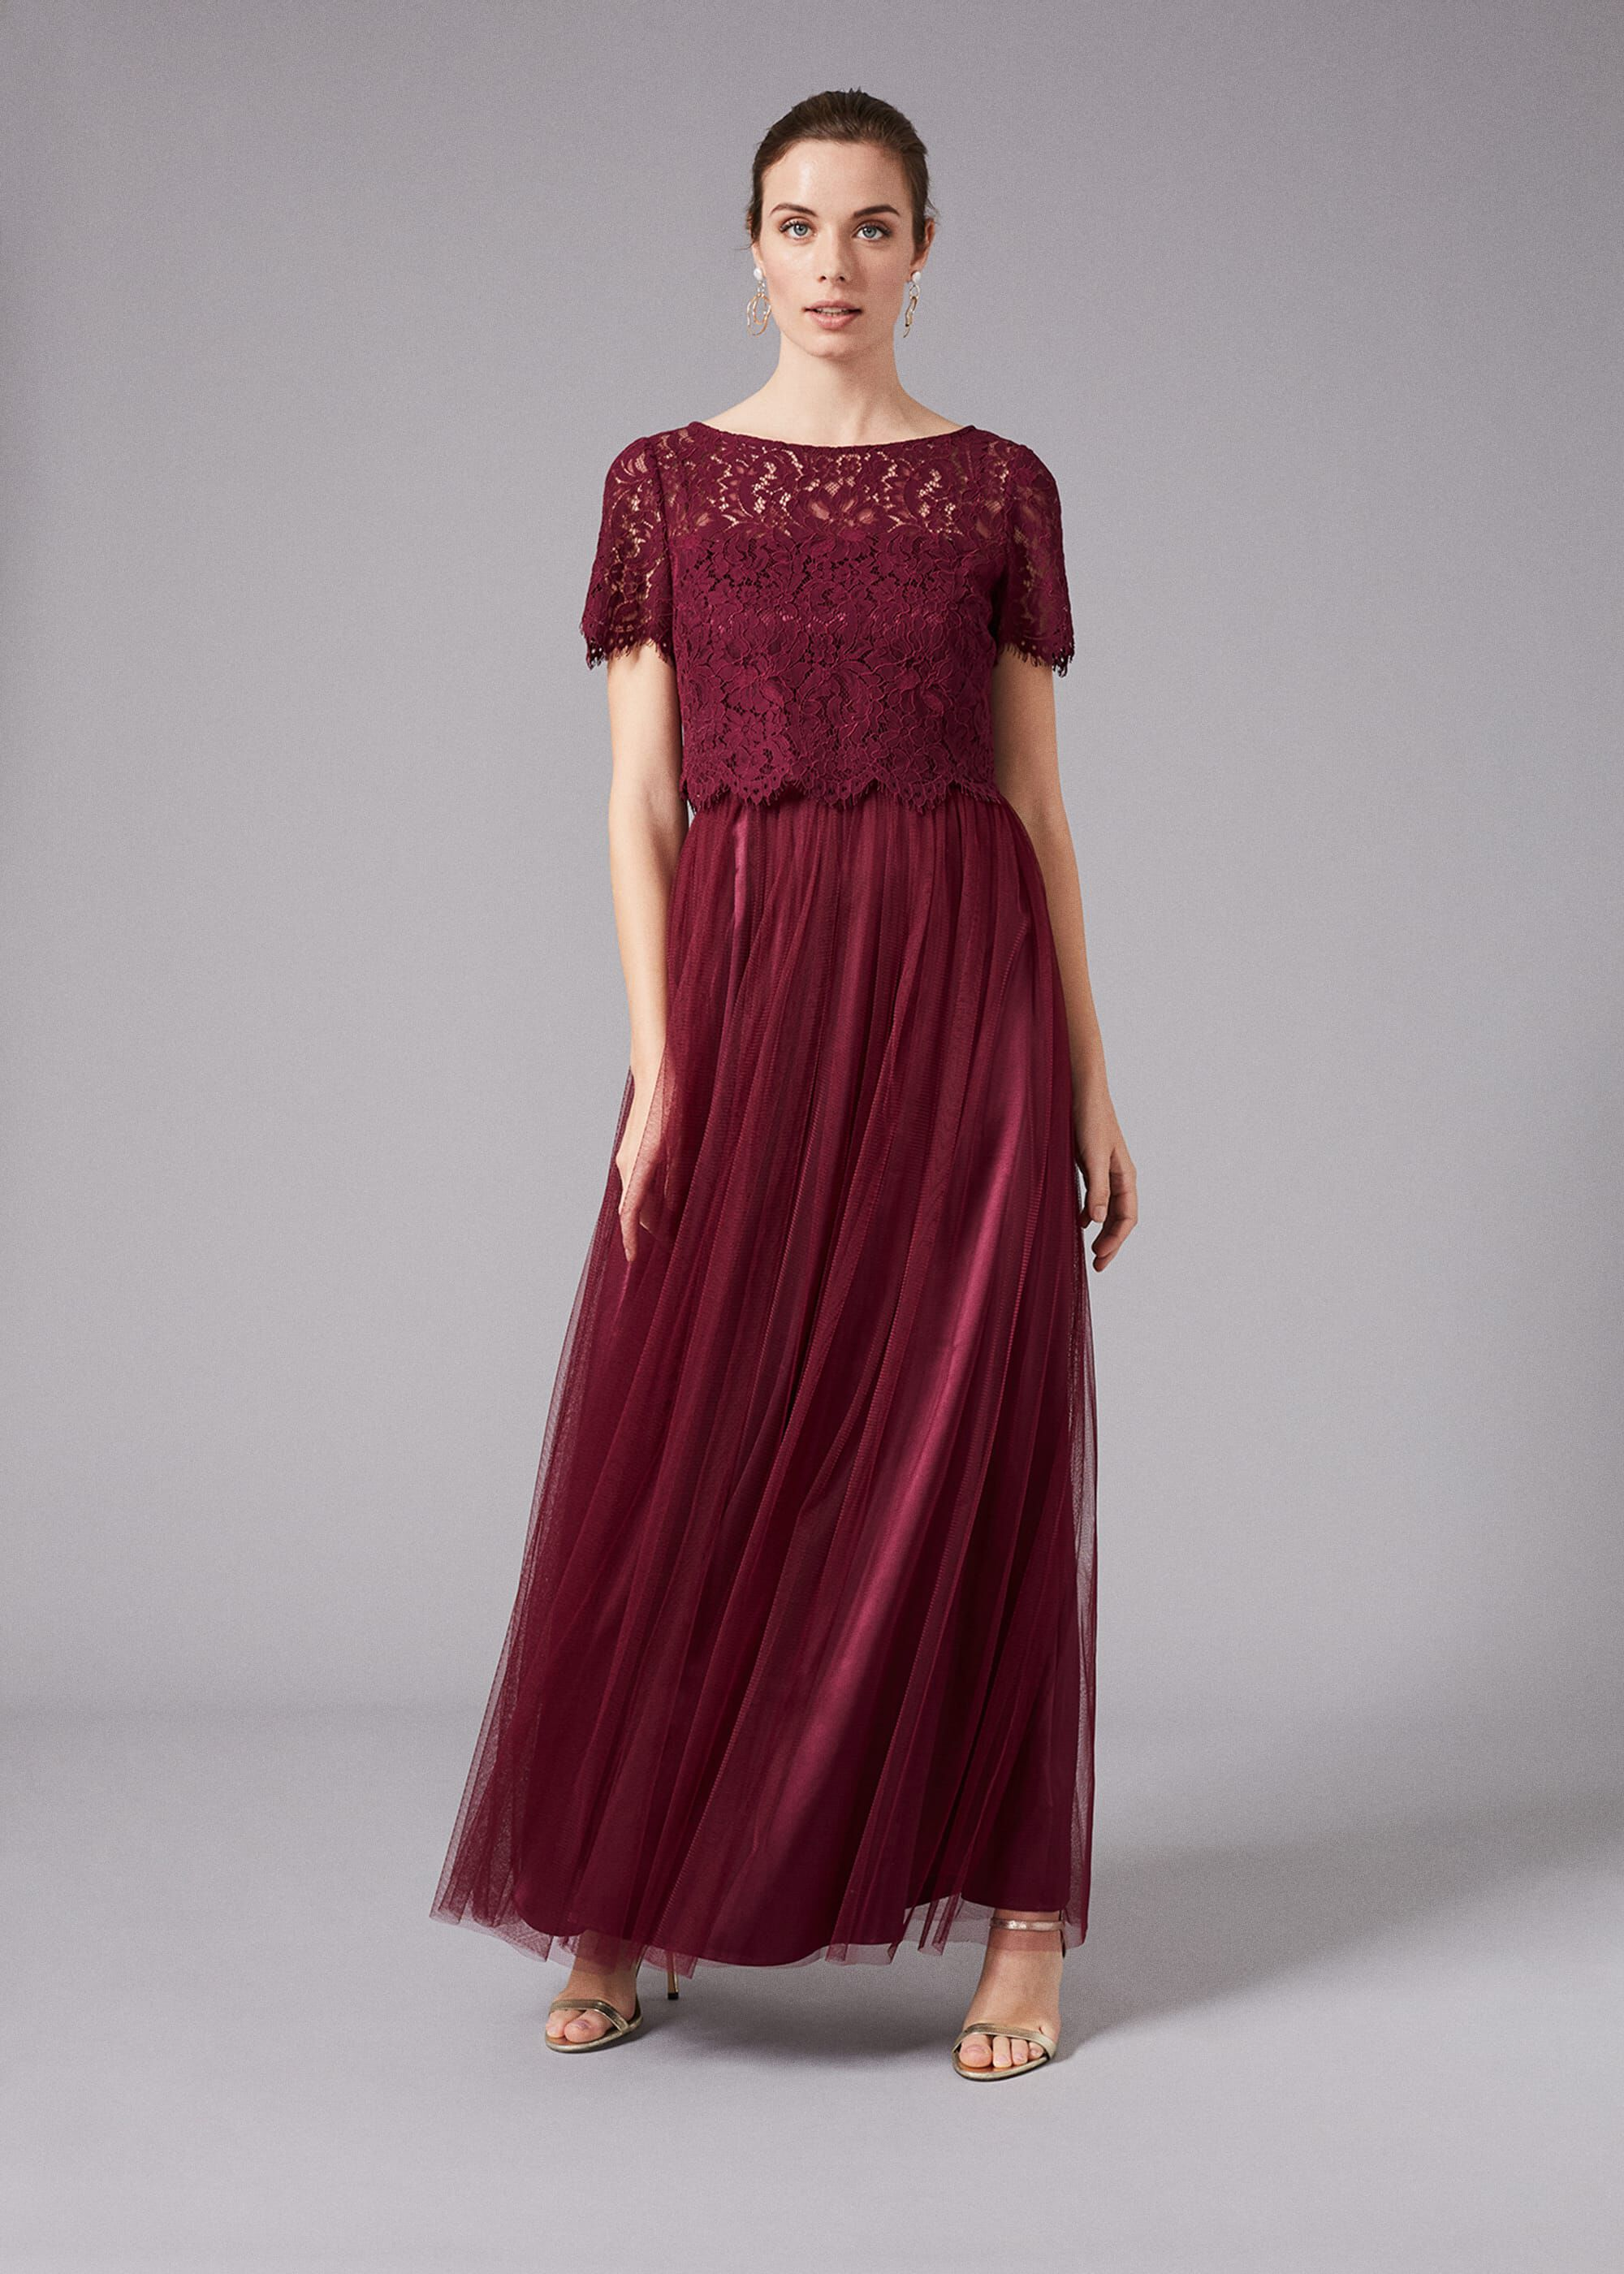 Phase Eight Kiera Lace Tulle Maxi Dress, Red, Maxi, Occasion Dress